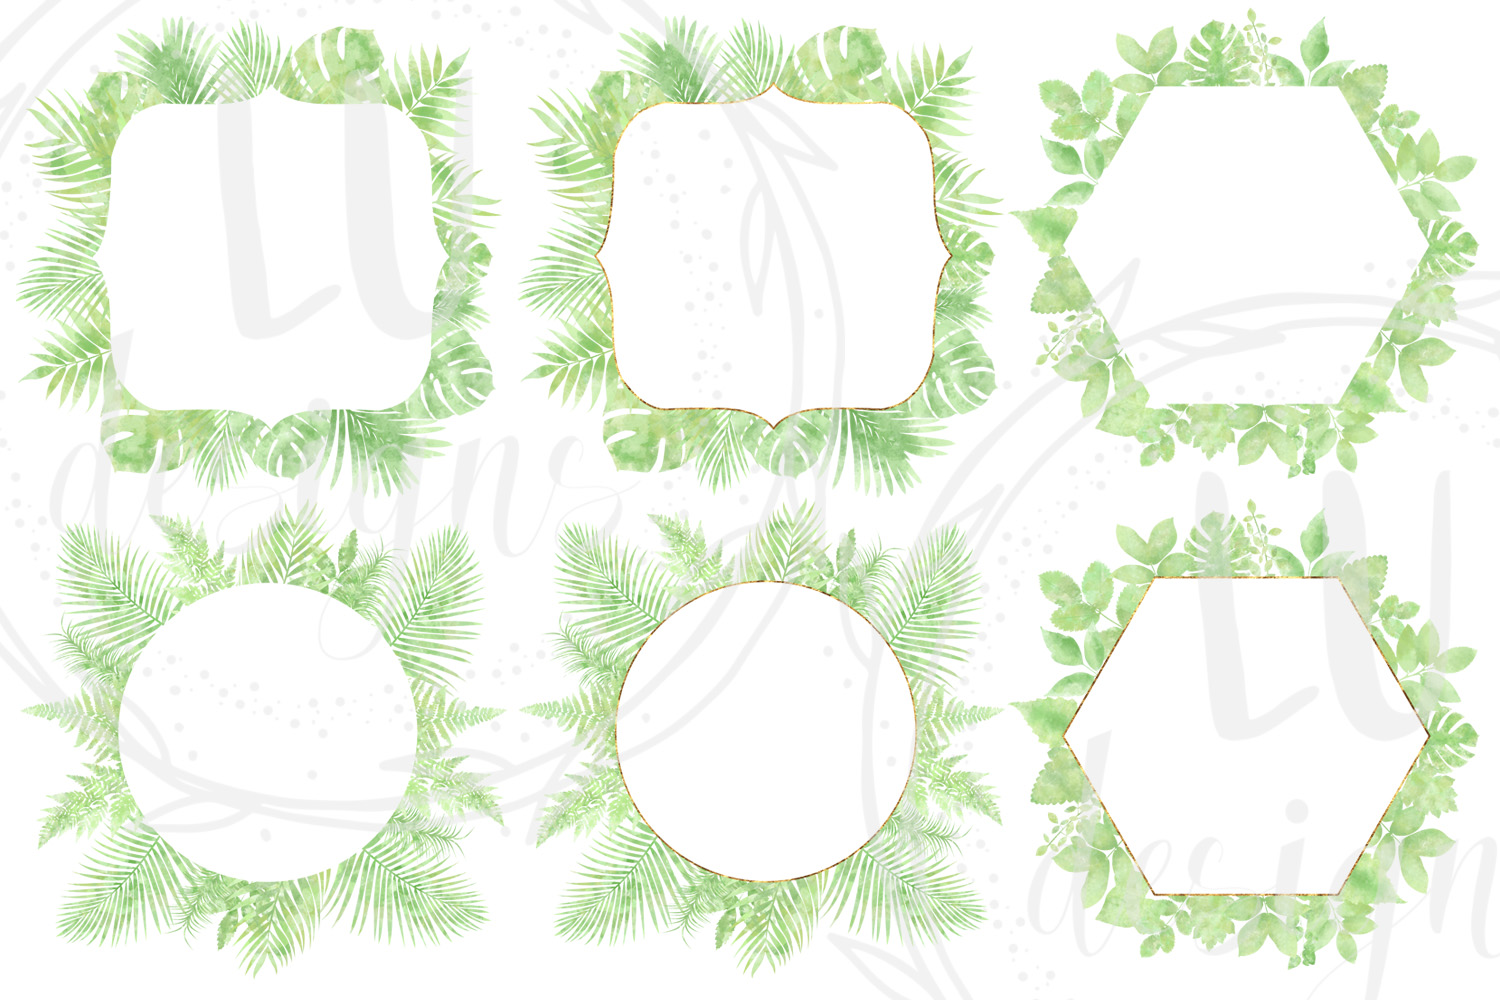 Watercolor Greenery Frames example image 3